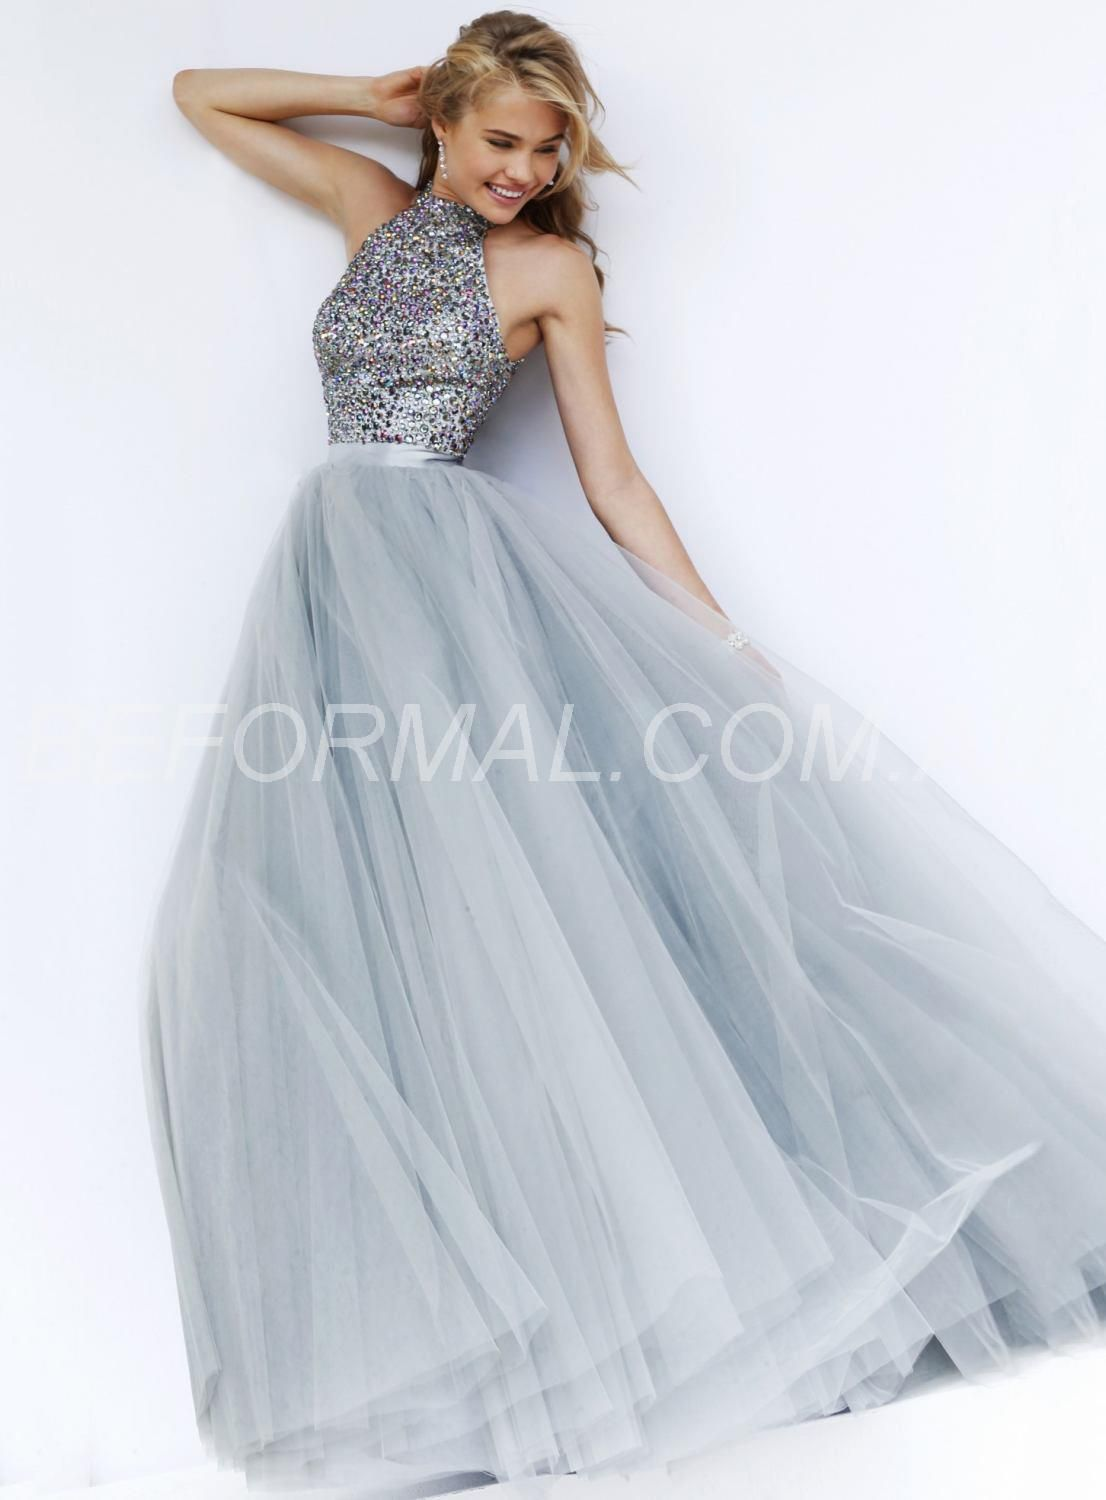 Beformal.com.au SUPPLIES Gorgeous High Neck A-line Beading Tulle ...